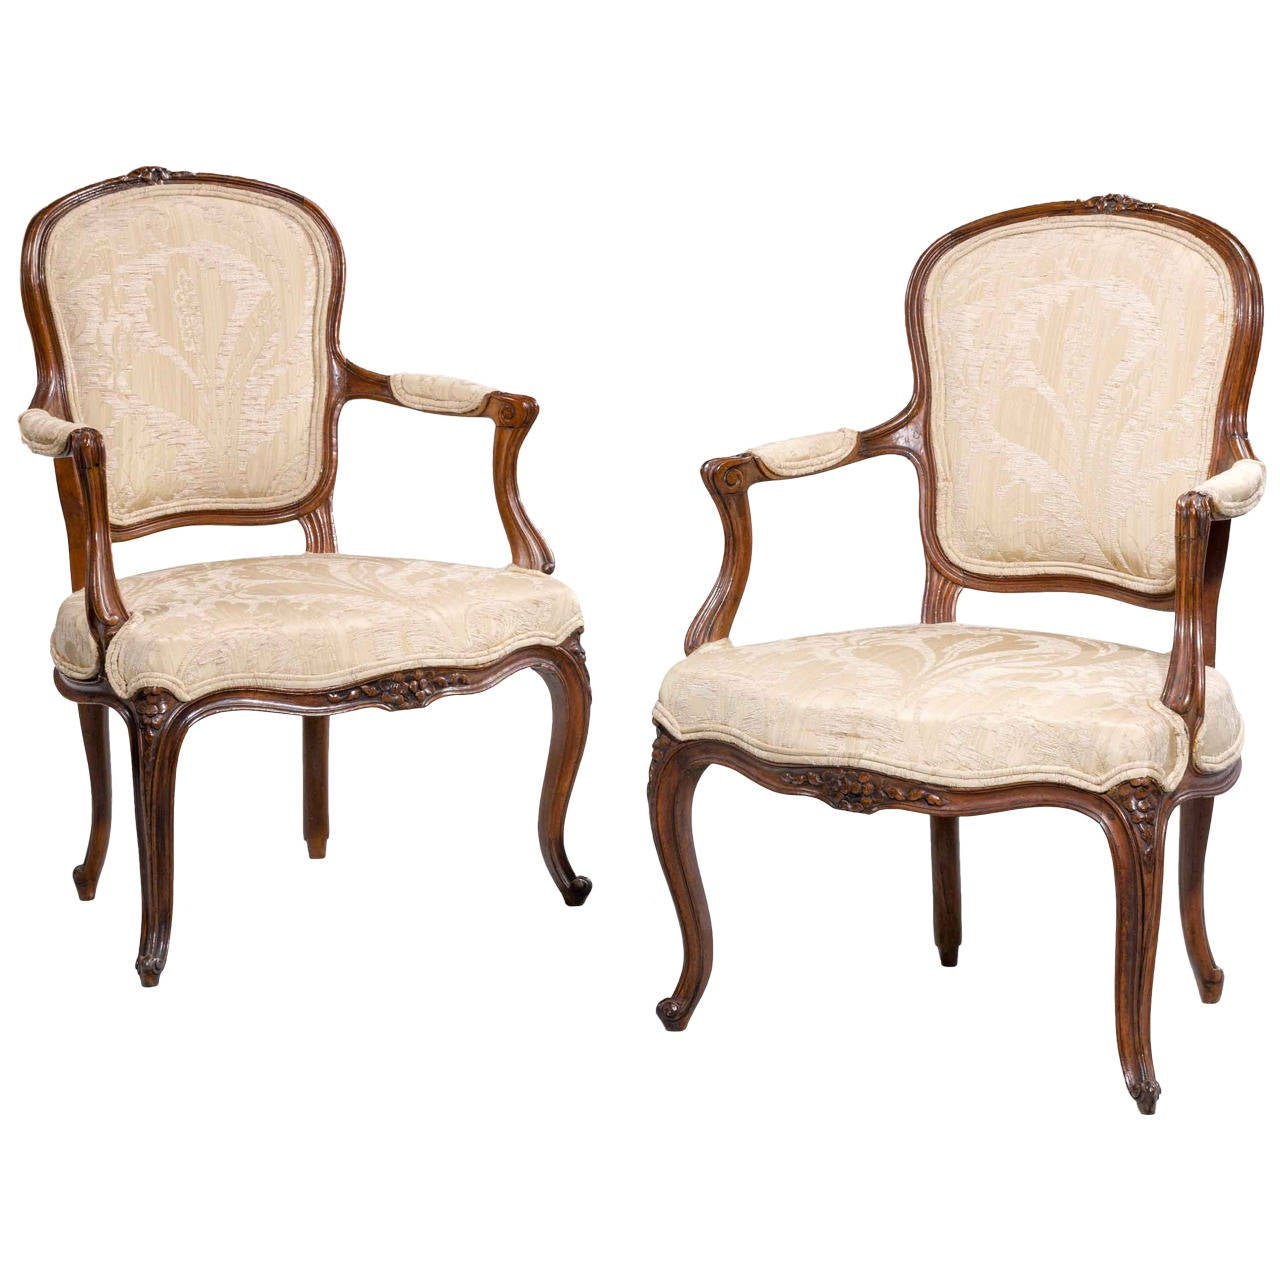 pair of 18th century louis xv period fauteuils for sale at. Black Bedroom Furniture Sets. Home Design Ideas